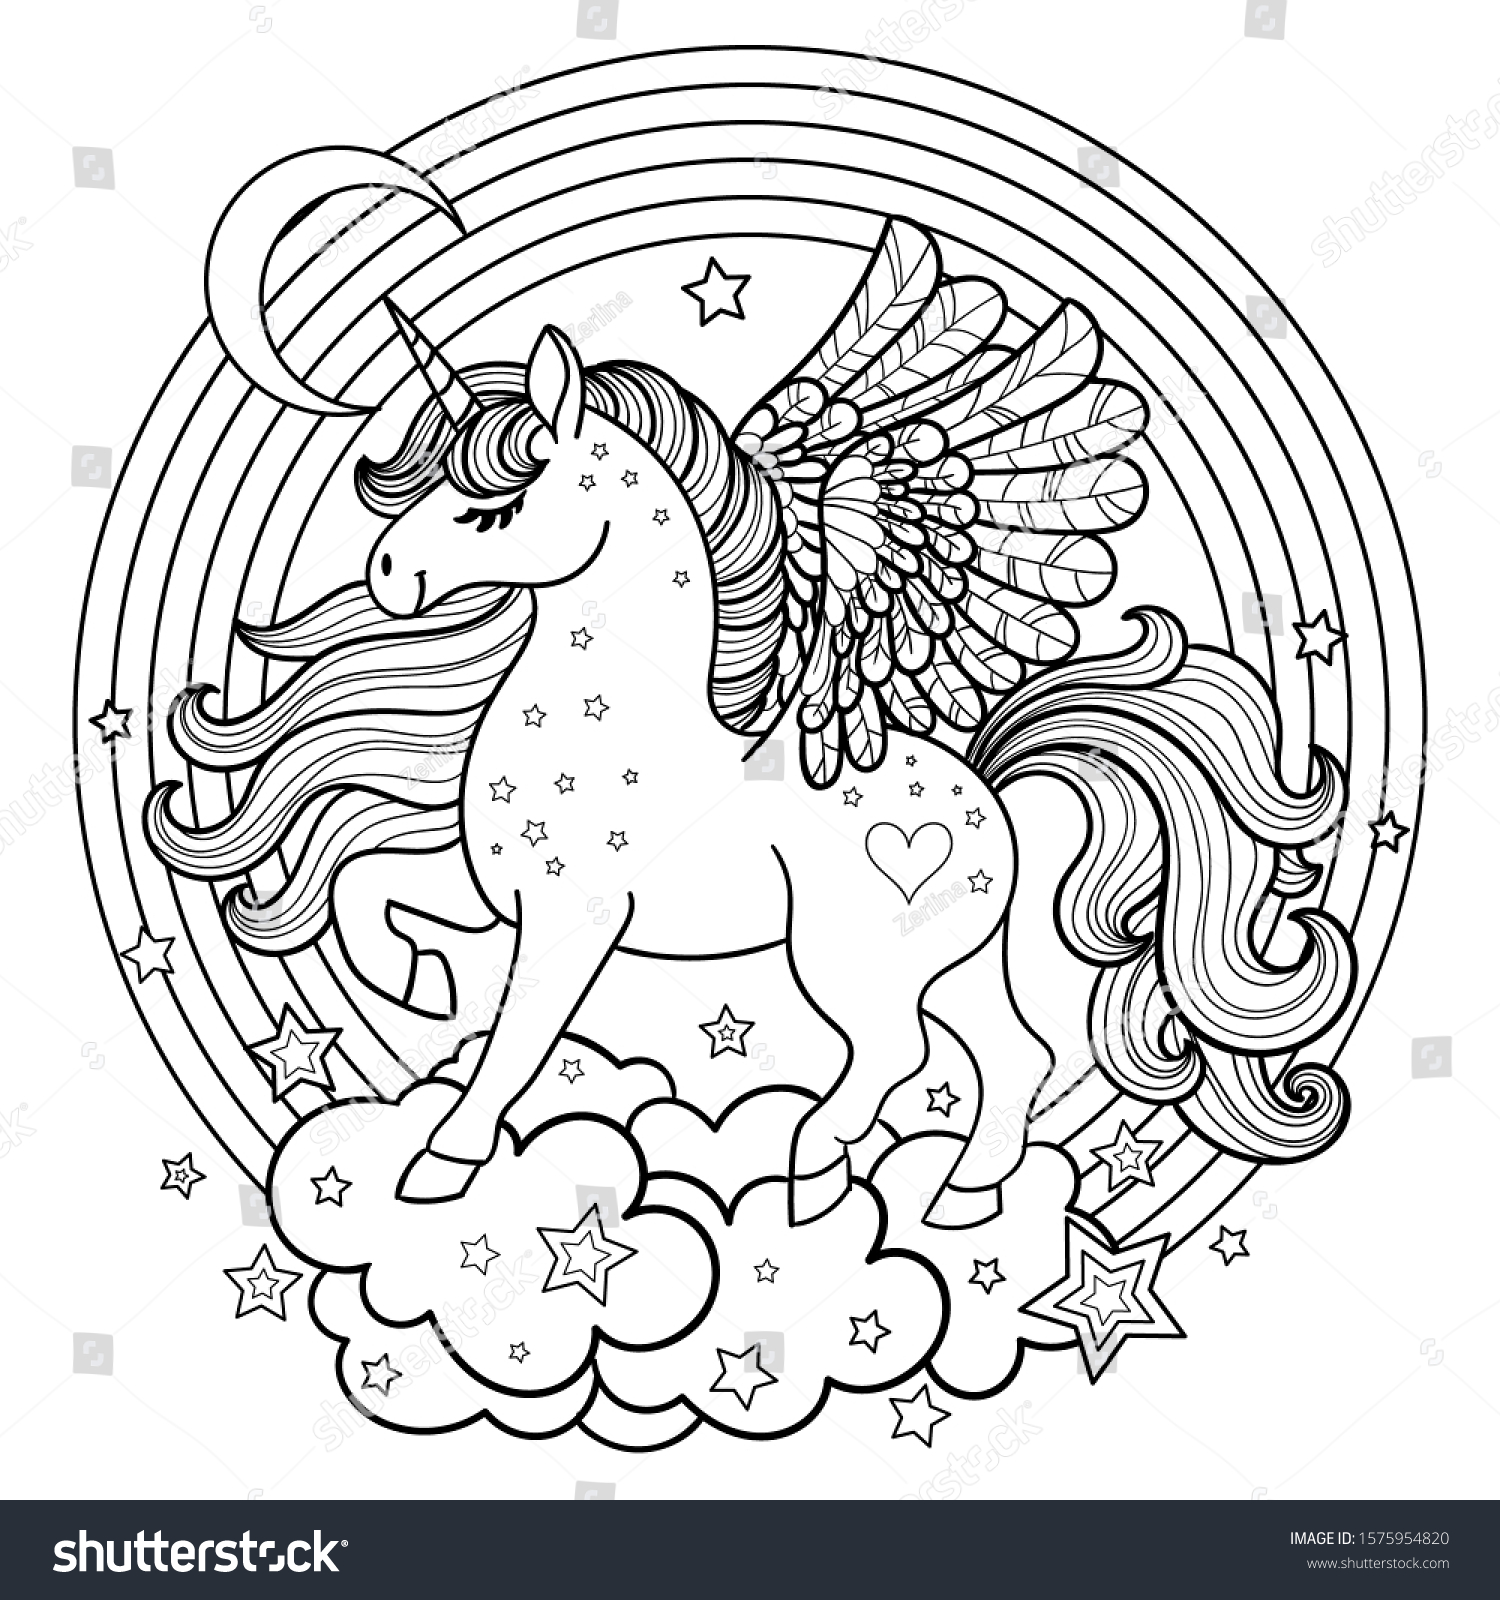 Unicorn Colours Images Stock Photos Vectors Shutterstock